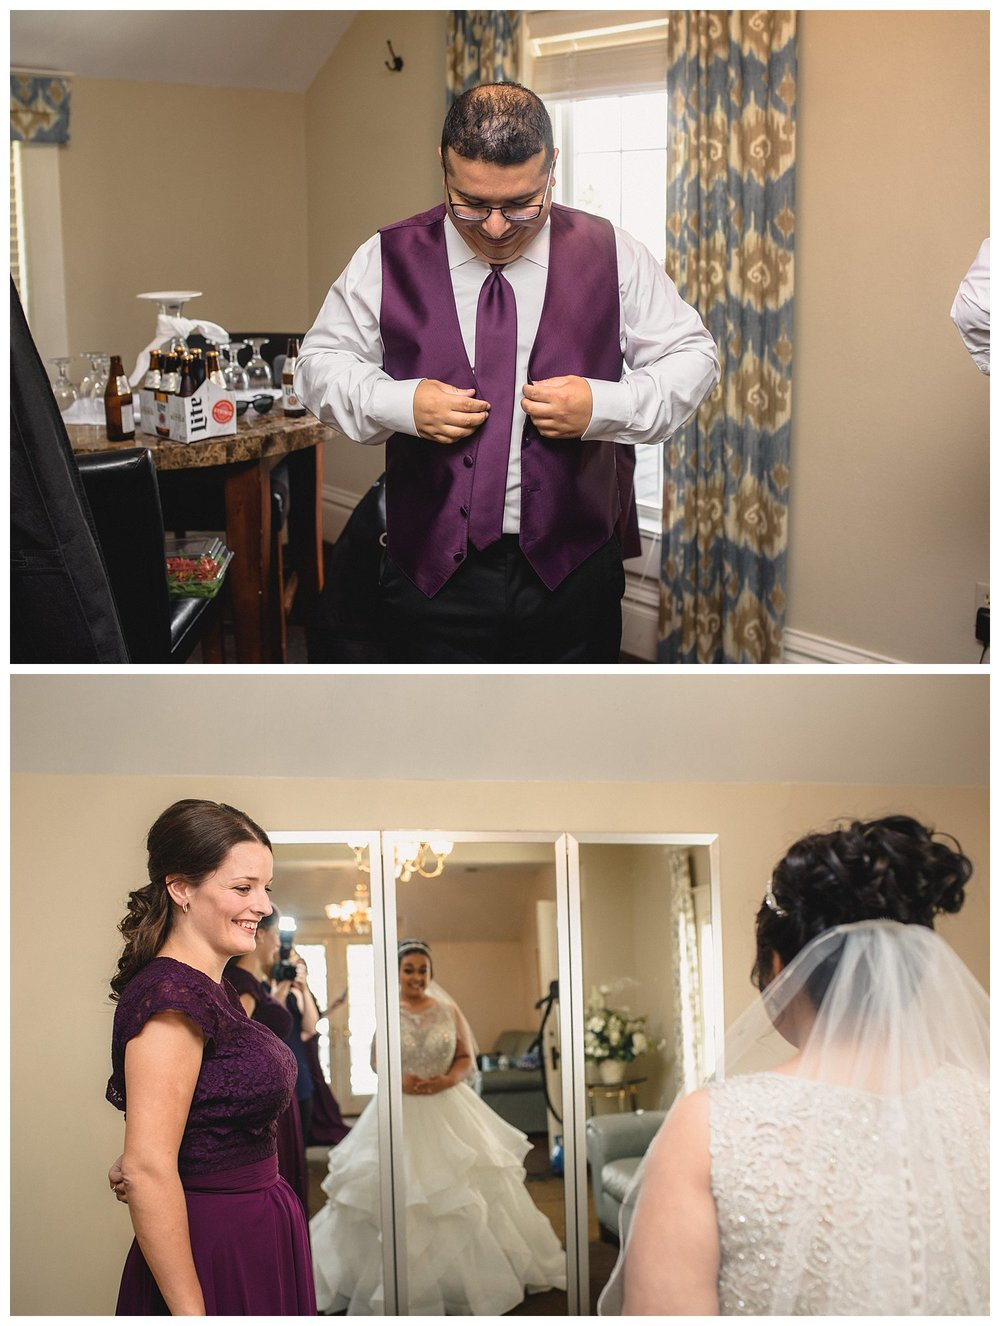 Kelsey_Diane_Photography_Hawthorne_House_Parkville_Kansas_City_Wedding_Veronica_Pat_0016.jpg